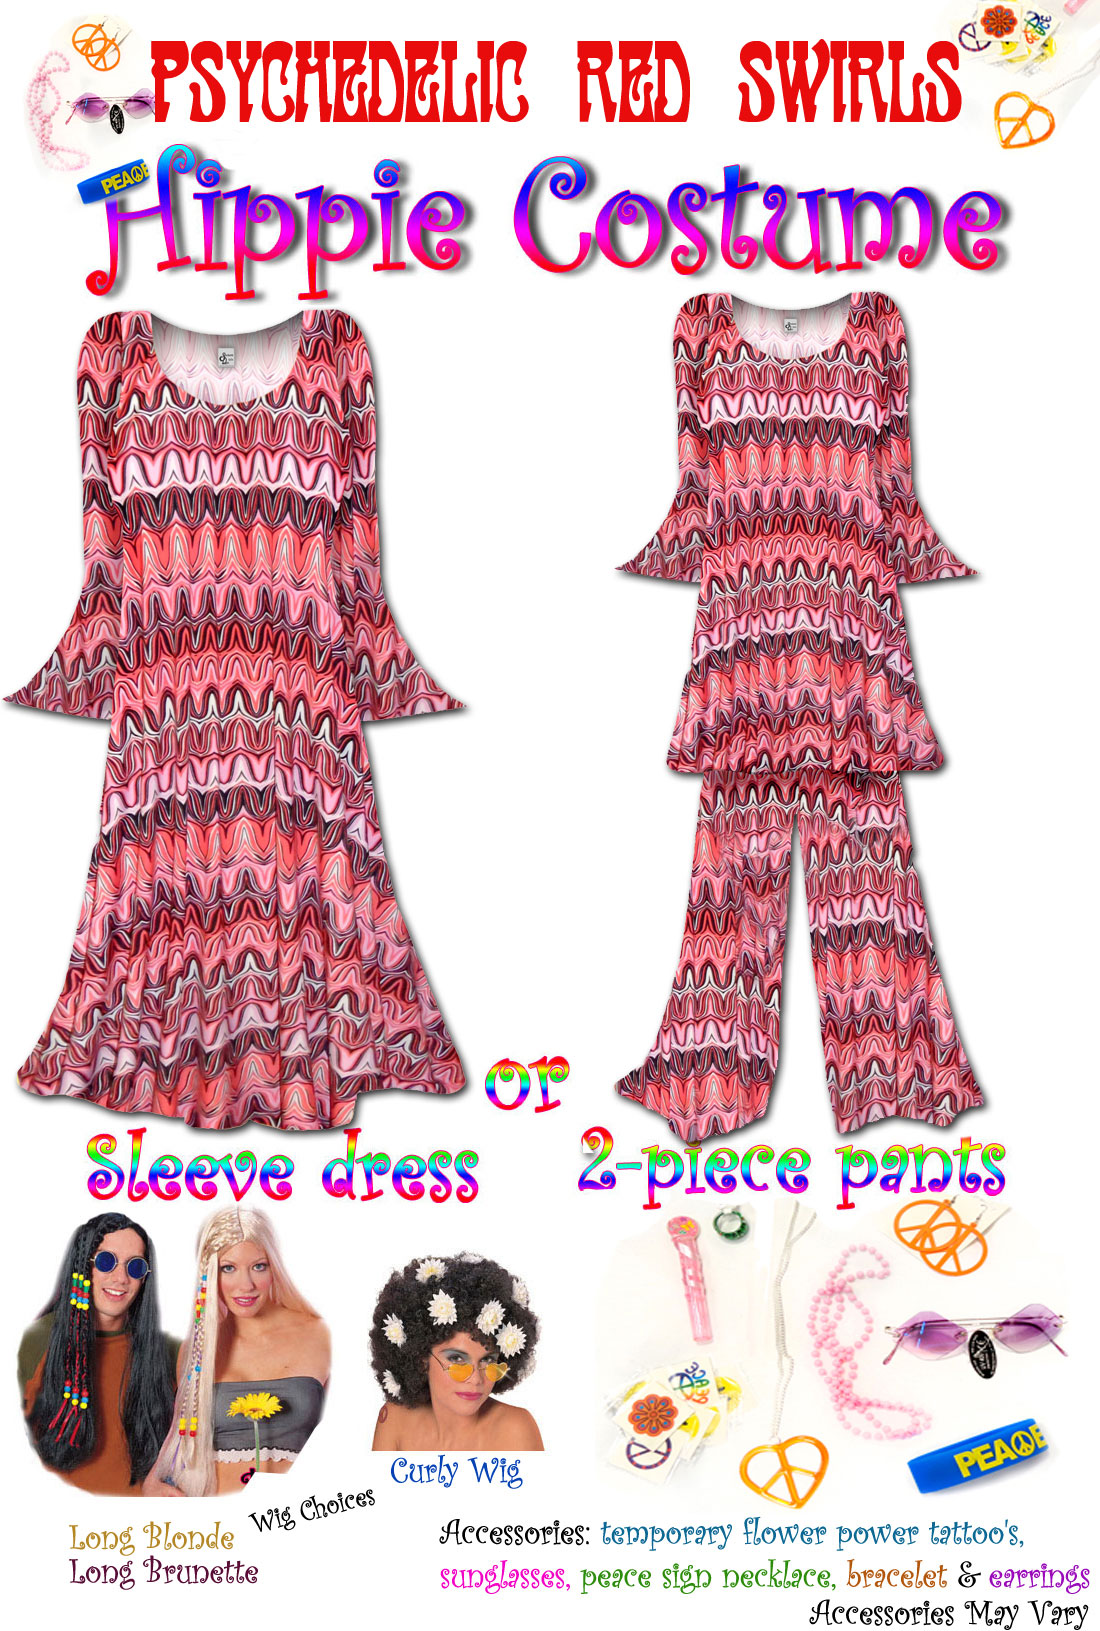 plus sizes indian princess sexy halloween costume u2013 women indian costume posted